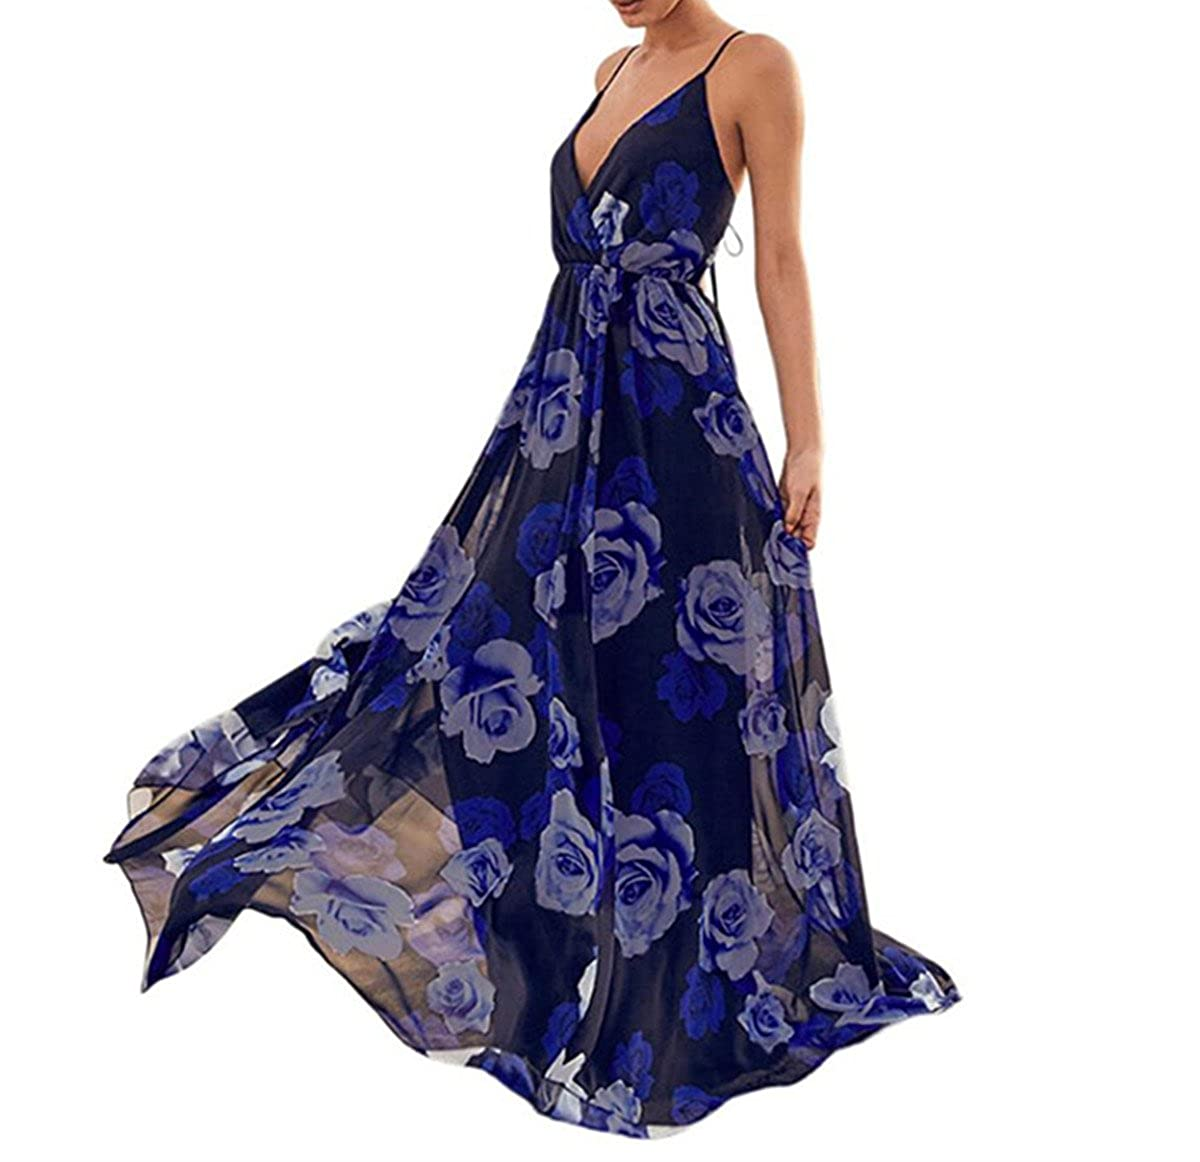 VEMOW Womens Dresses Knot Front Ruched Summer Sexy Cocktail Maxi Halter Vintage Princess Prom Sleeveless Dresses - Strappy Floral Party Flare Clubwear Beach ...